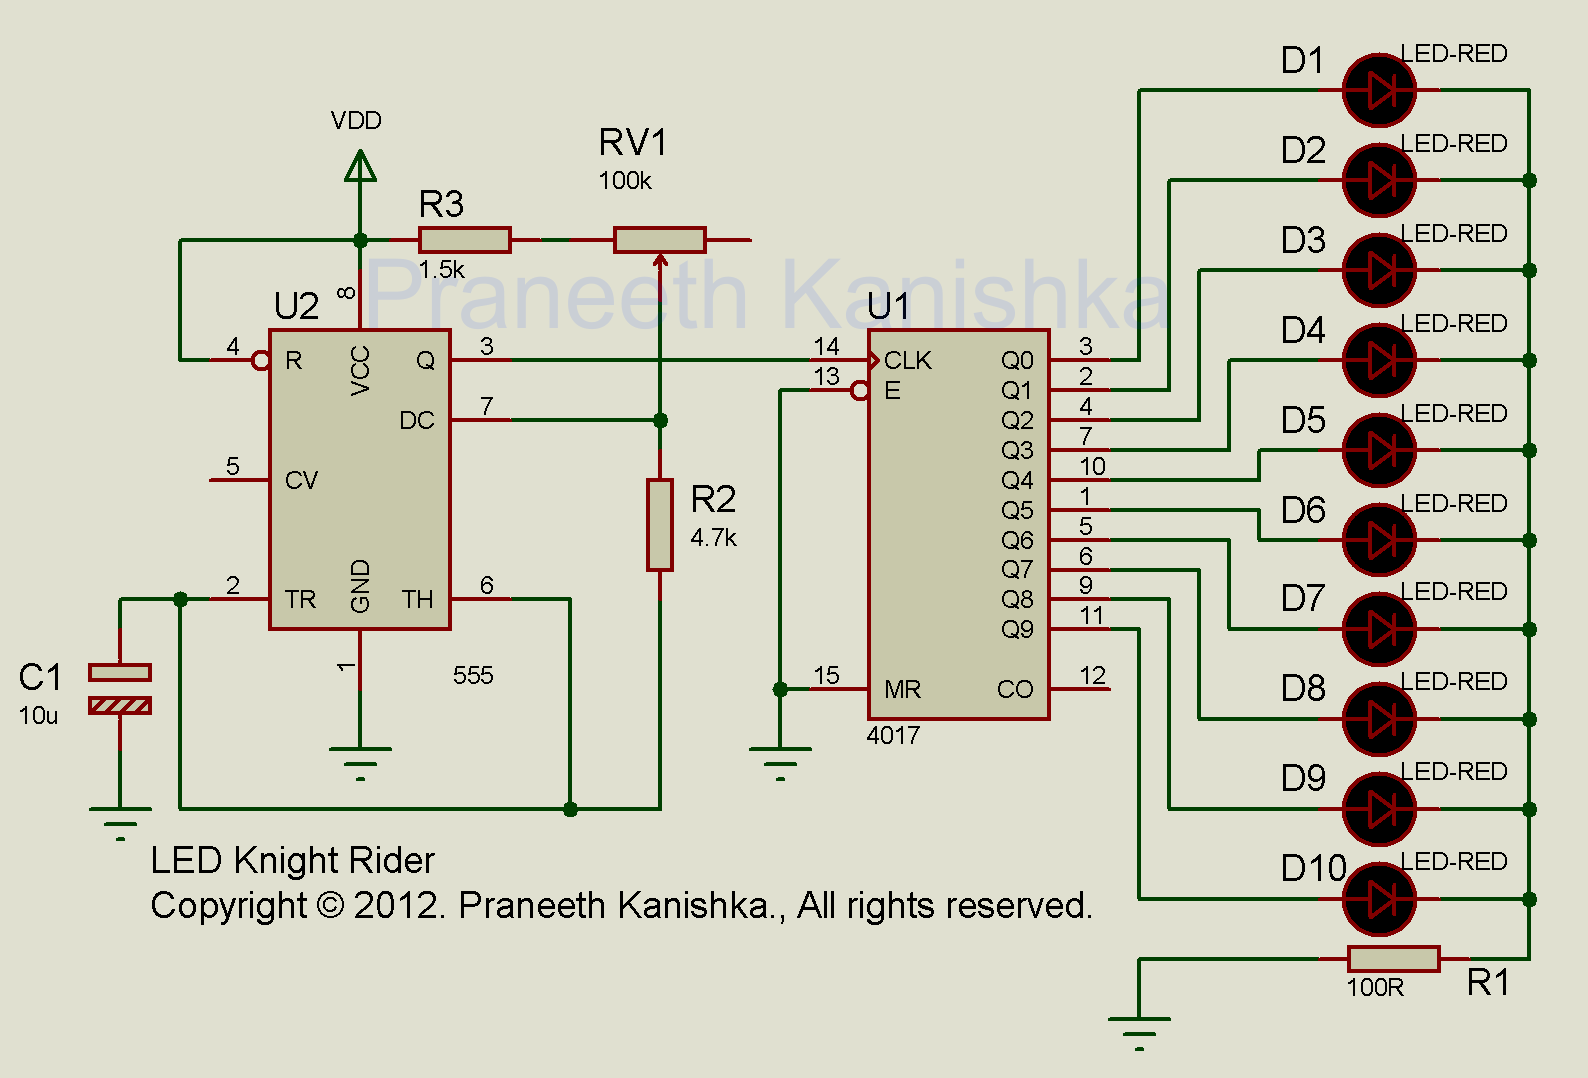 hight resolution of 11 led knight rider project circuit diagram wiring diagram yer 4017 led knight rider running light circuit diagram circuit wiring